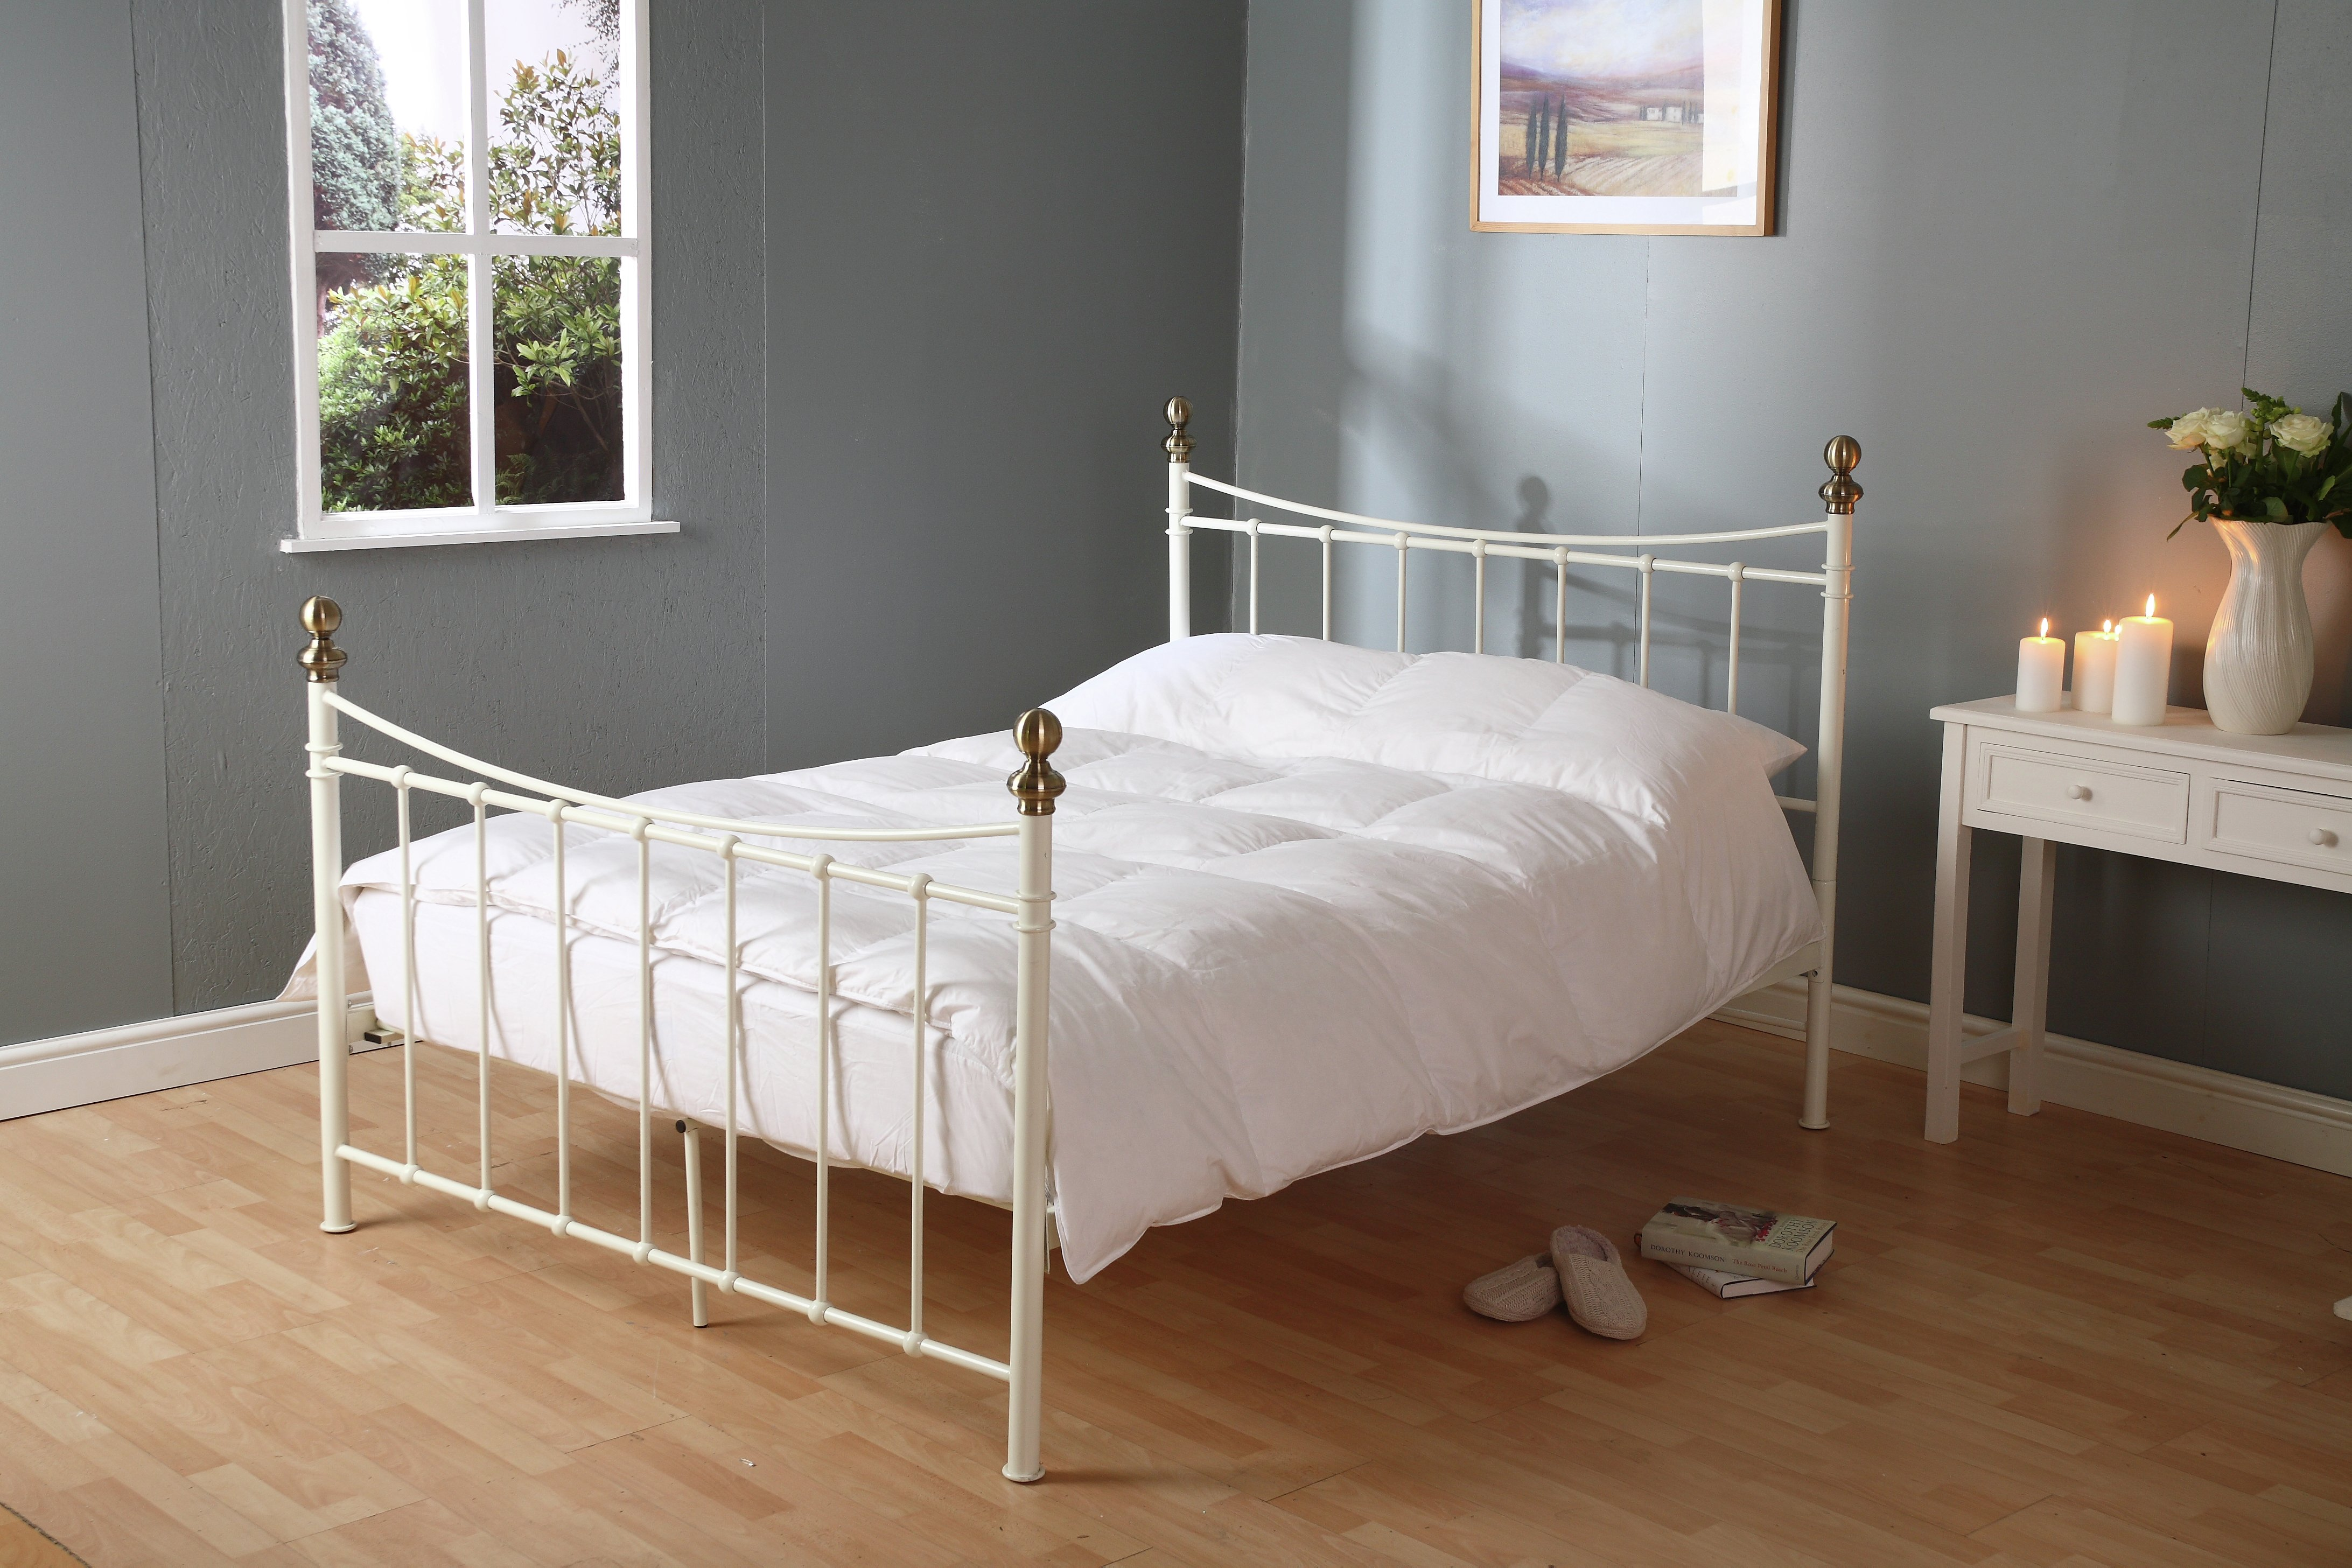 downland  duck and feather his and hers  duvet  double